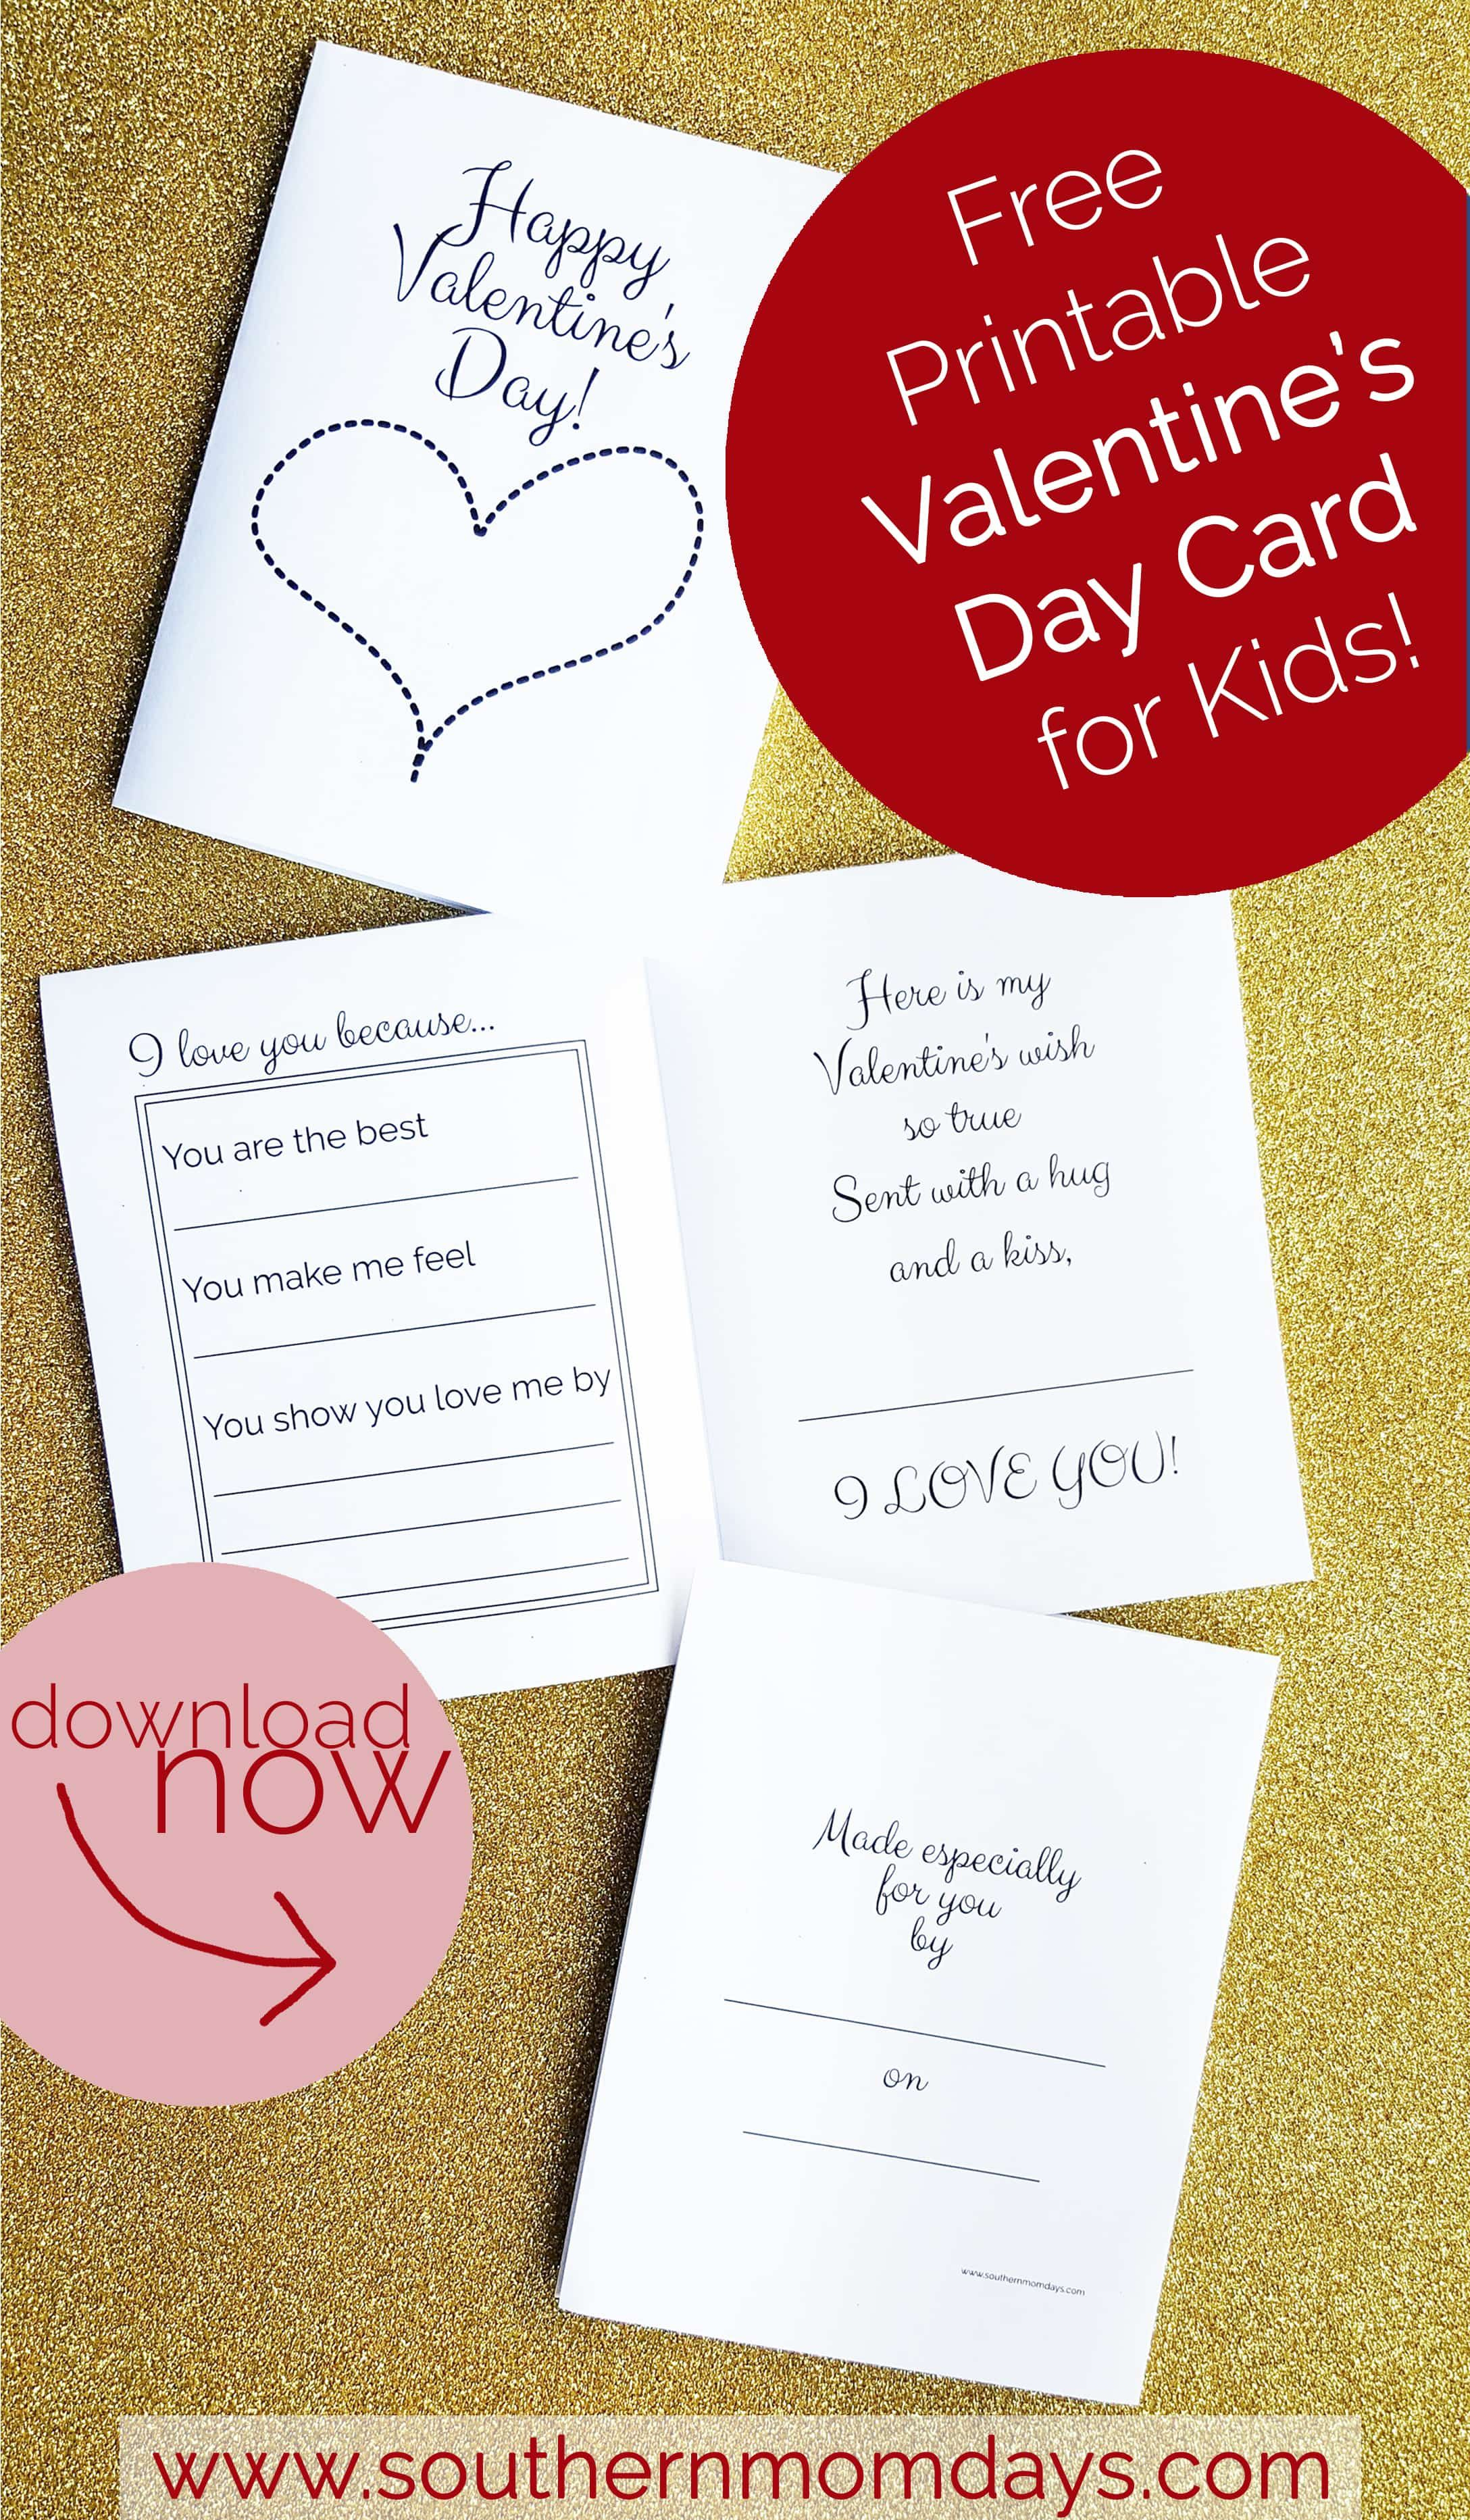 Free Printable: Valentine's Day Card For Kids | Valentine's Day - Free Printable Valentines Day Cards For Parents